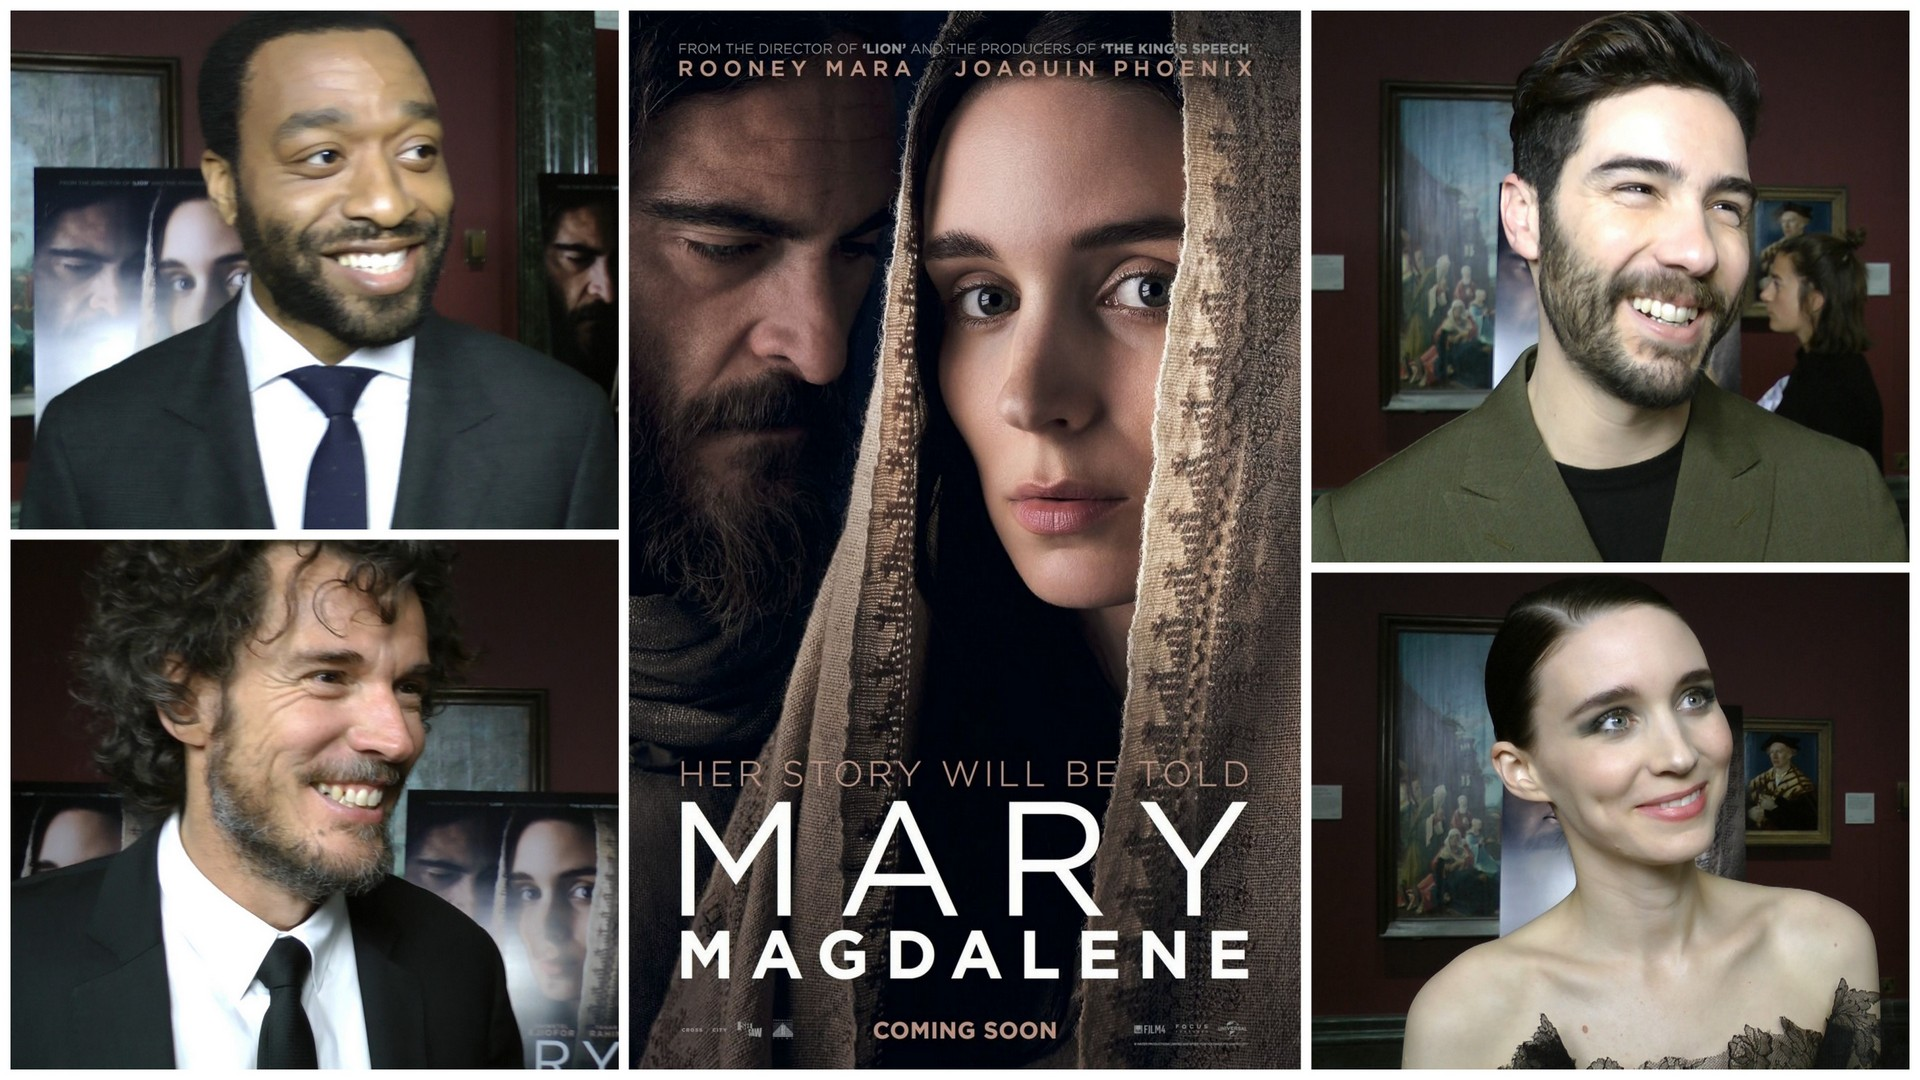 Mary Magdalene premiere